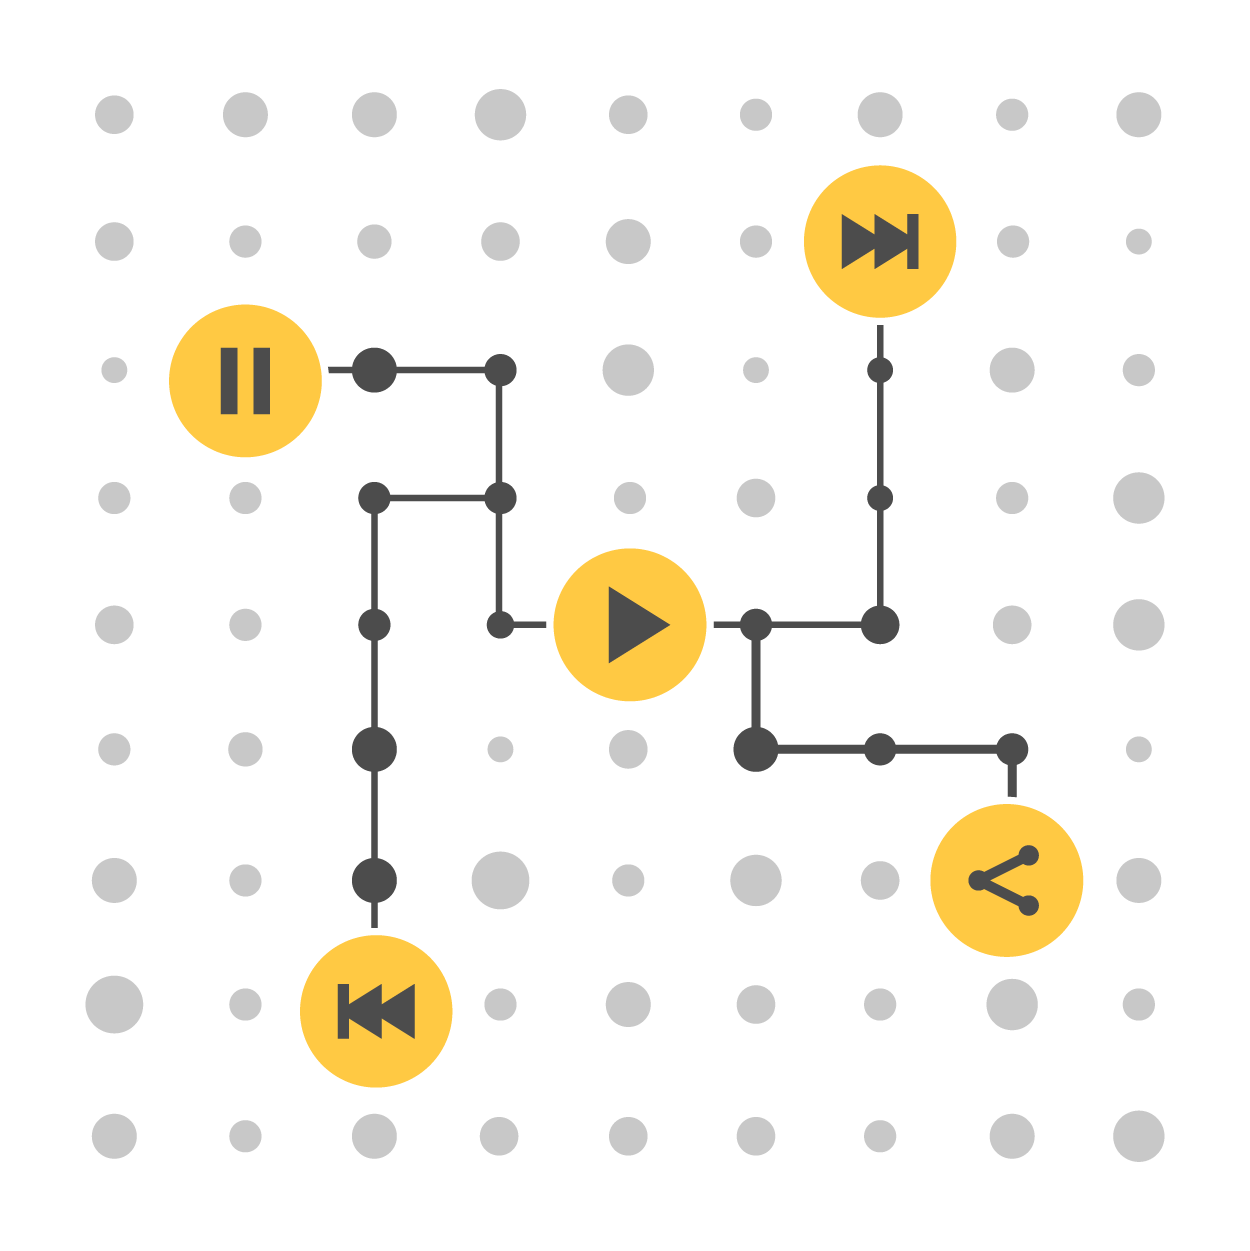 Music Curation with machine learning - Thesis Project, Master of Interaction Design2019 | 18 WeeksWith background music curation as an intervention point, the project explores ways for human raters to collaborate with machine learning to augment human intelligence.